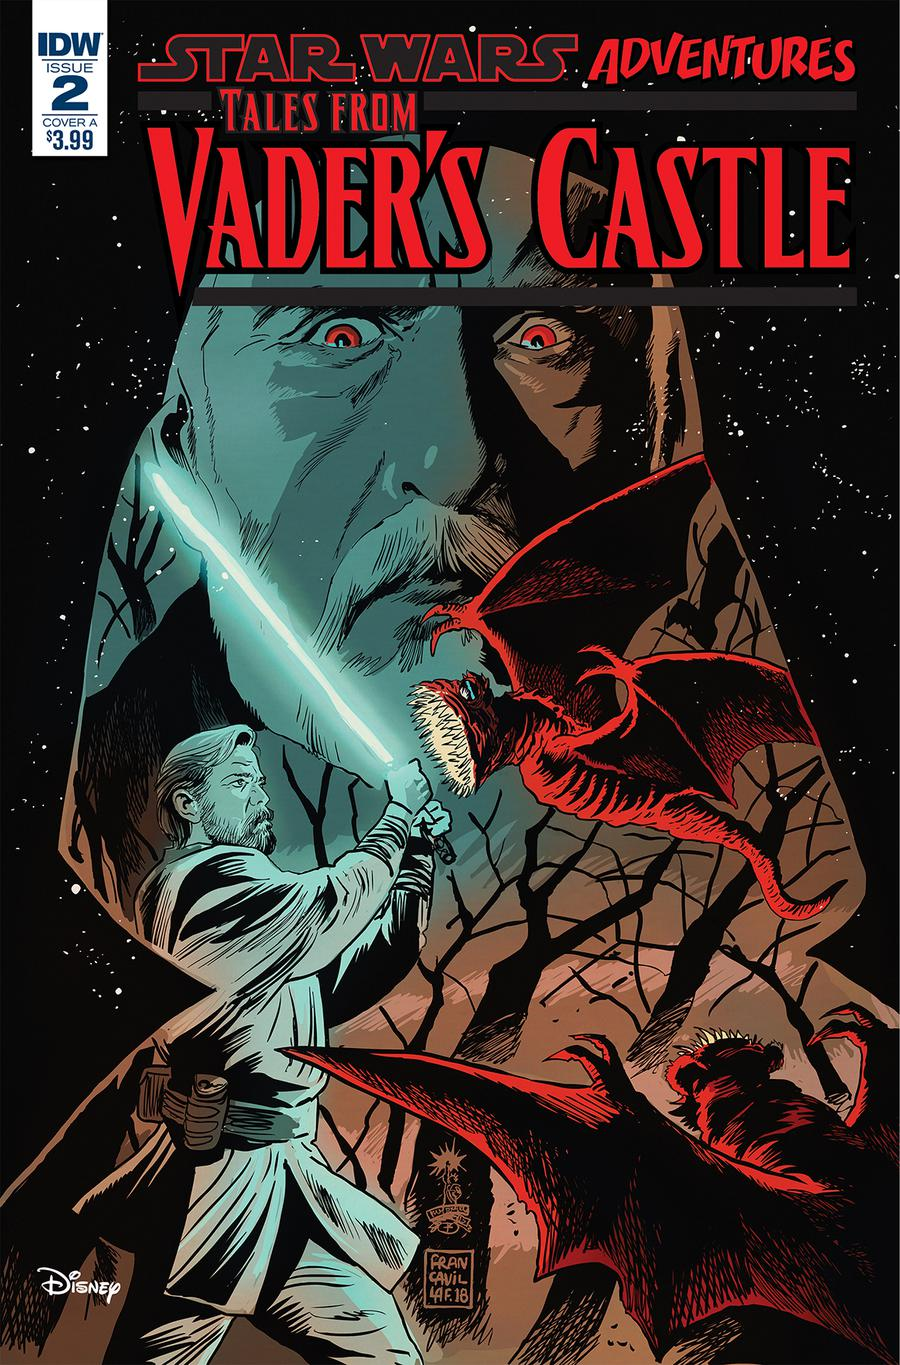 Star Wars Adventures Tales From Vaders Castle #2 Cover A Regular Francesco Francavilla Cover